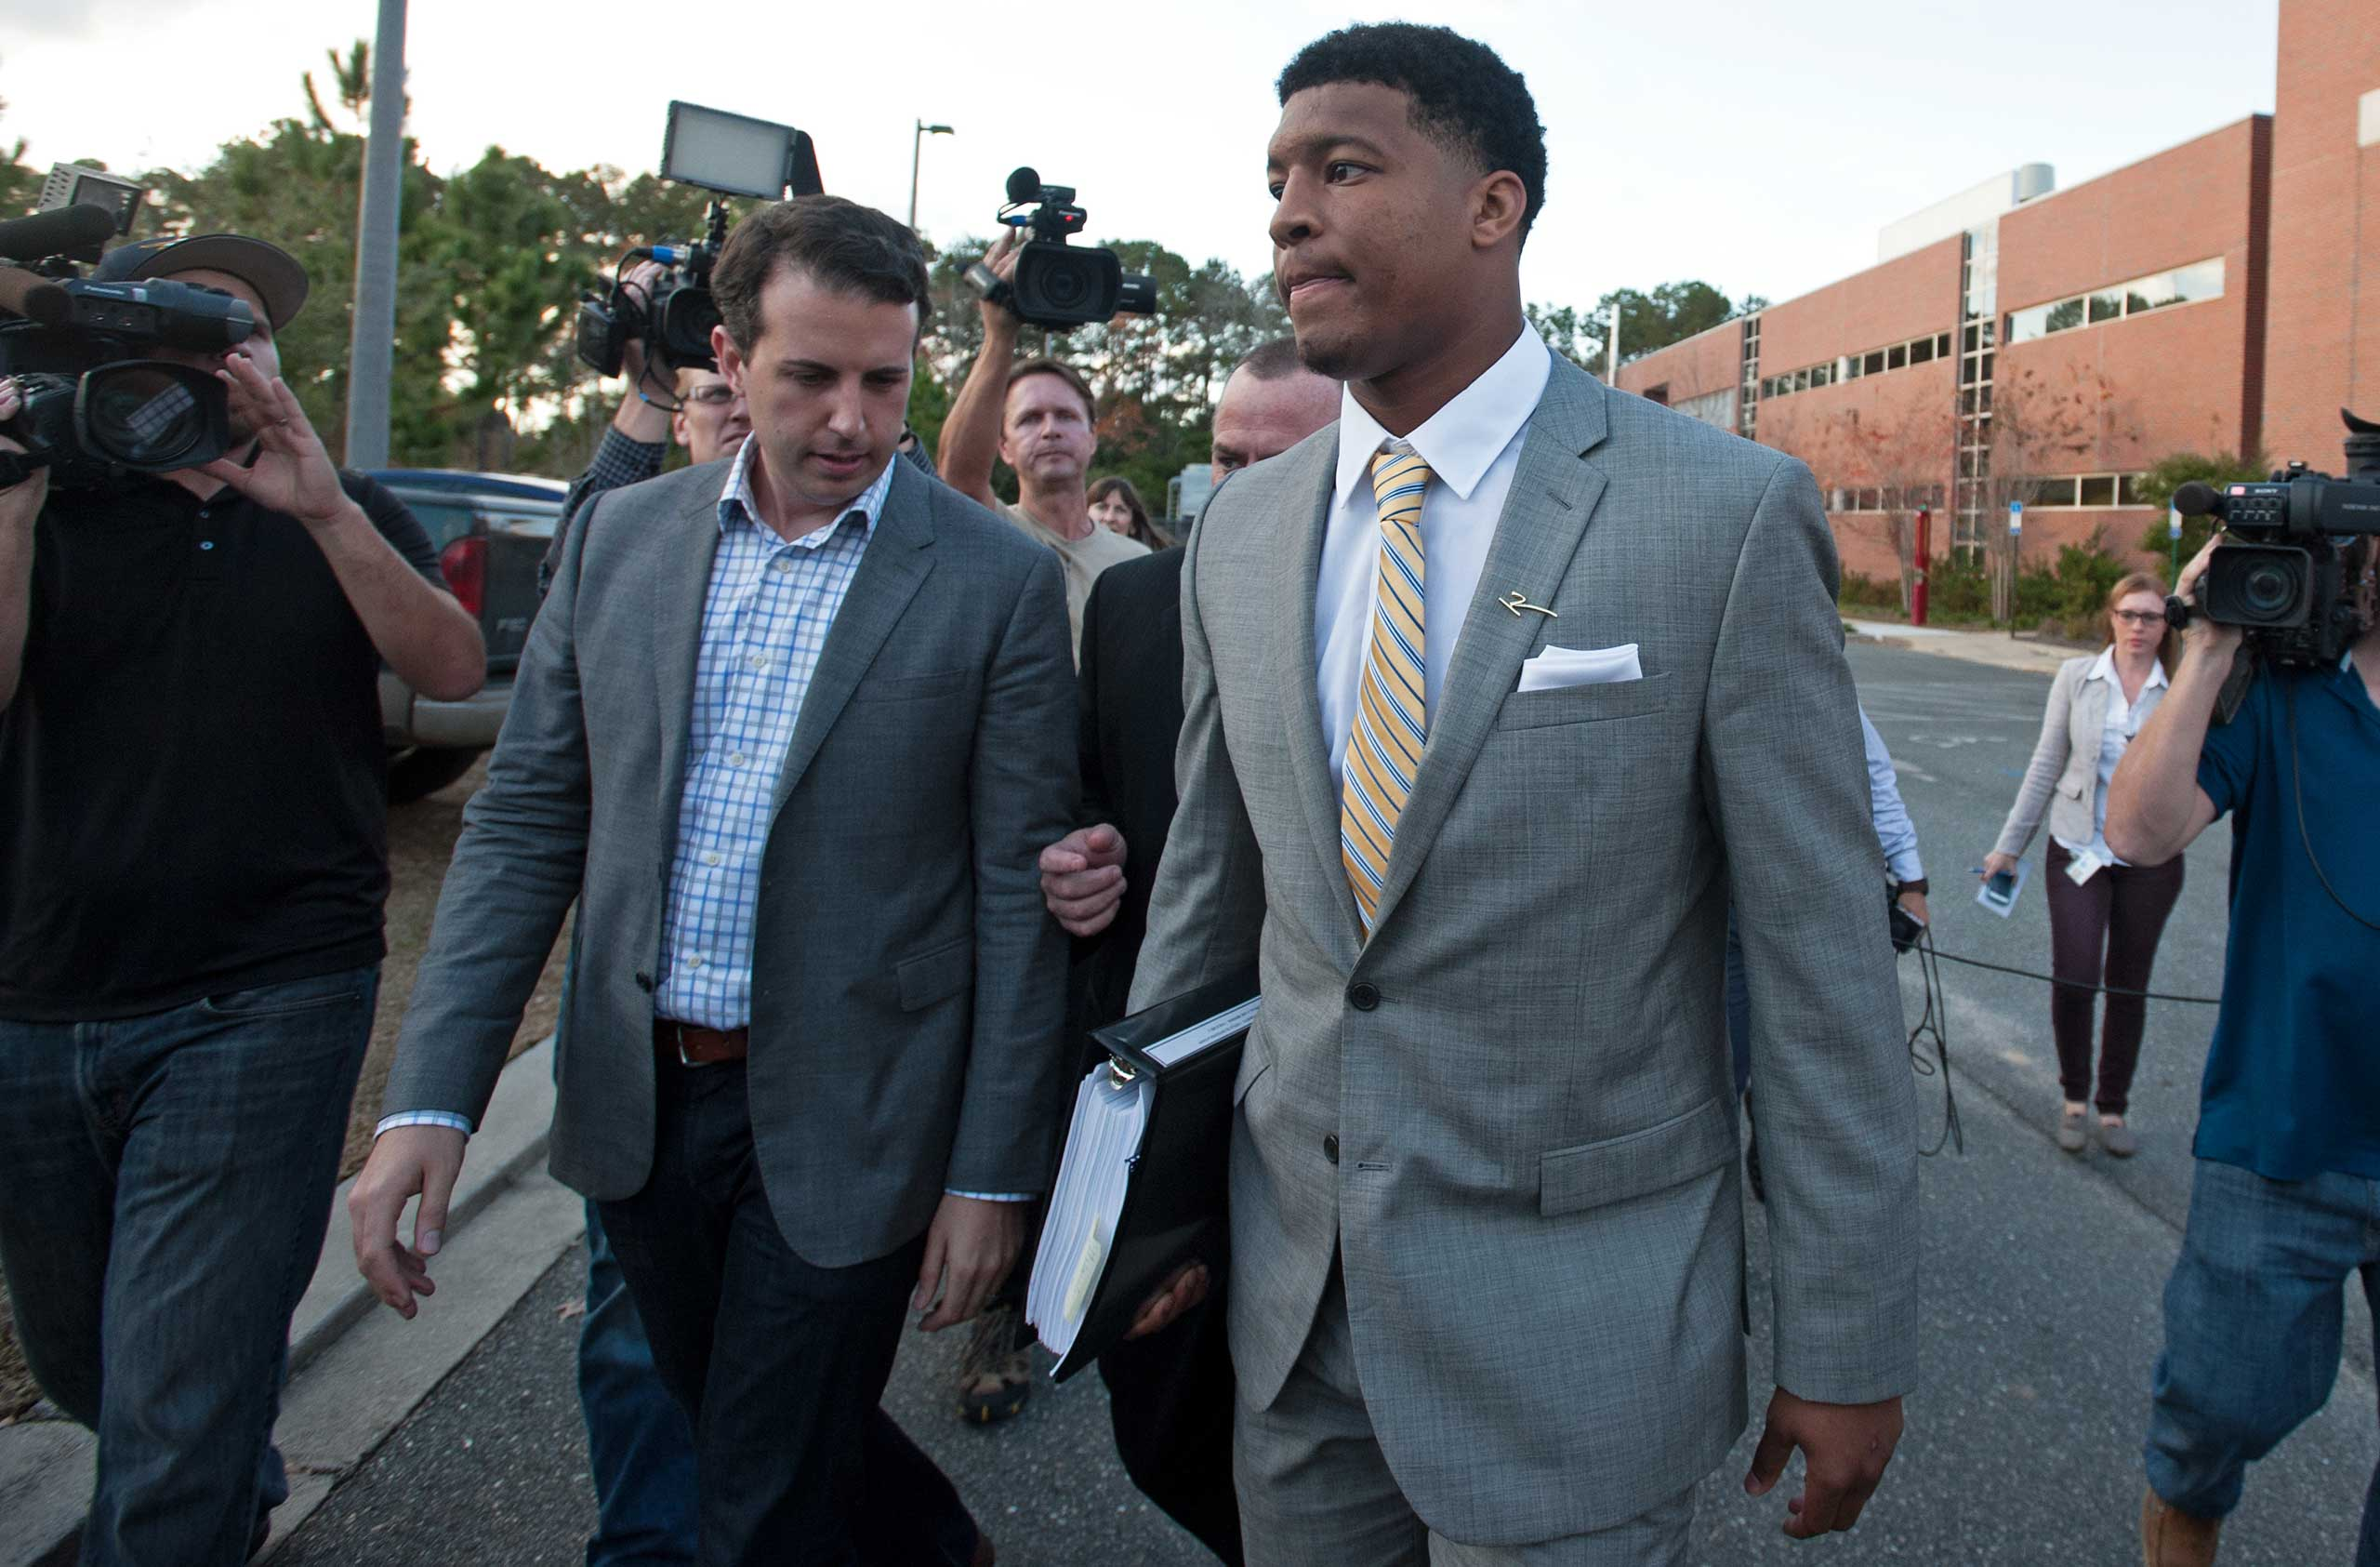 Florida State Seminoles quaterback Jameis Winston leaves his student conduct code hearing on Dec. 2, 2014 in Tallahassee, Fl.